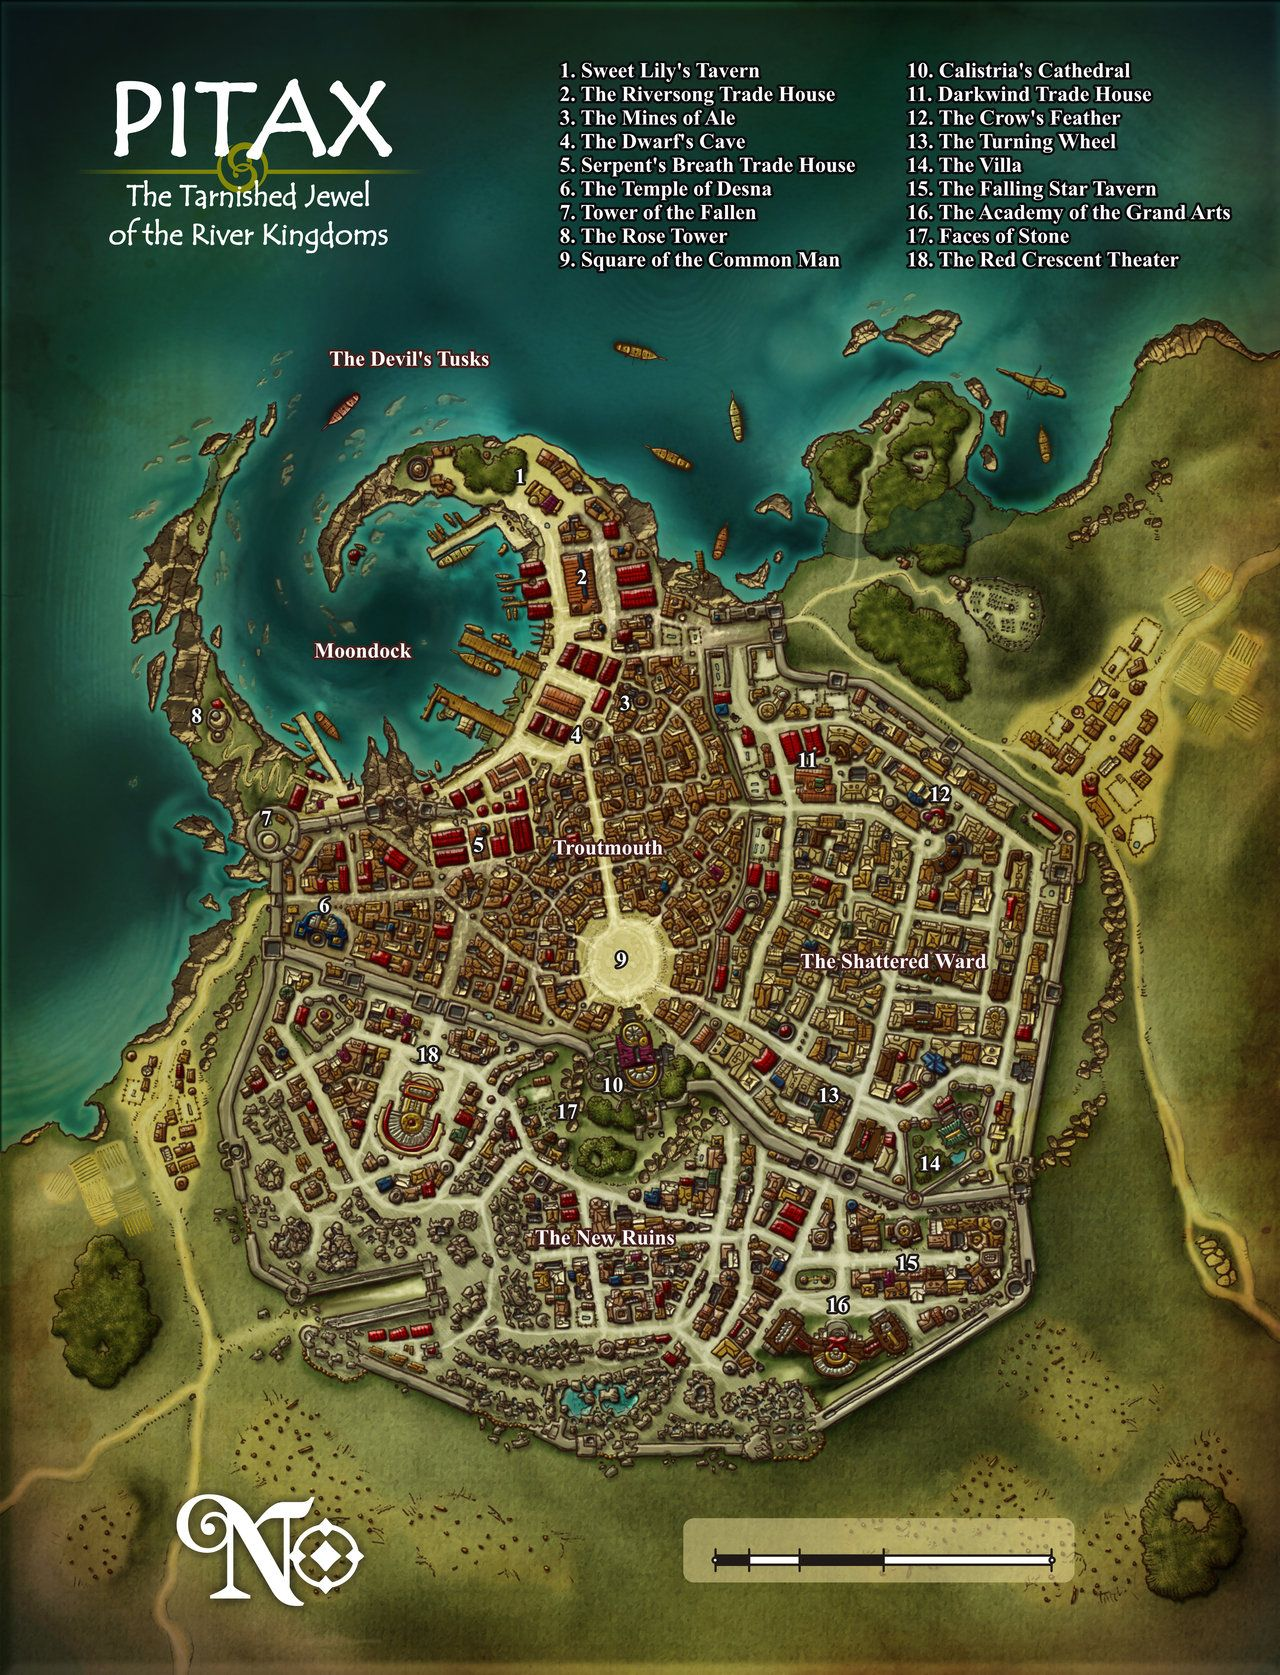 City map for Pitax city on the Pathfinder roleplaying game